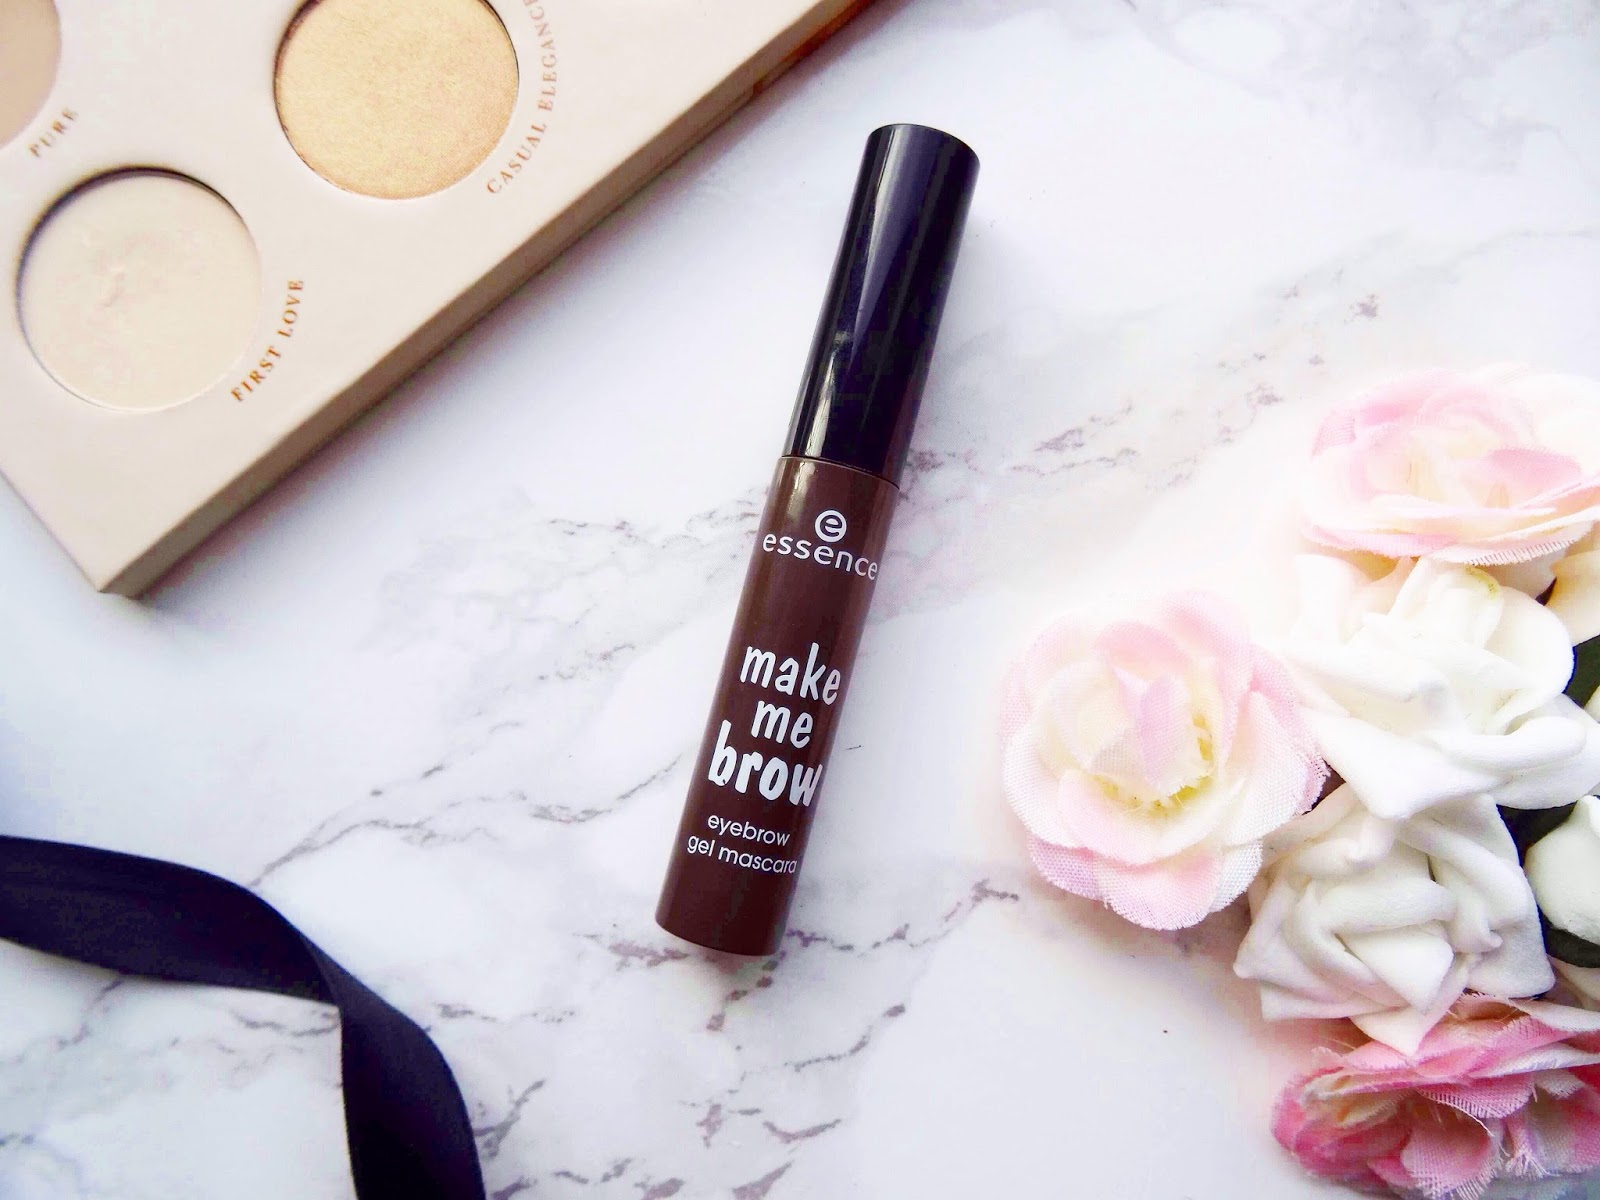 Essence Make Me Brow Brow Mascara Review